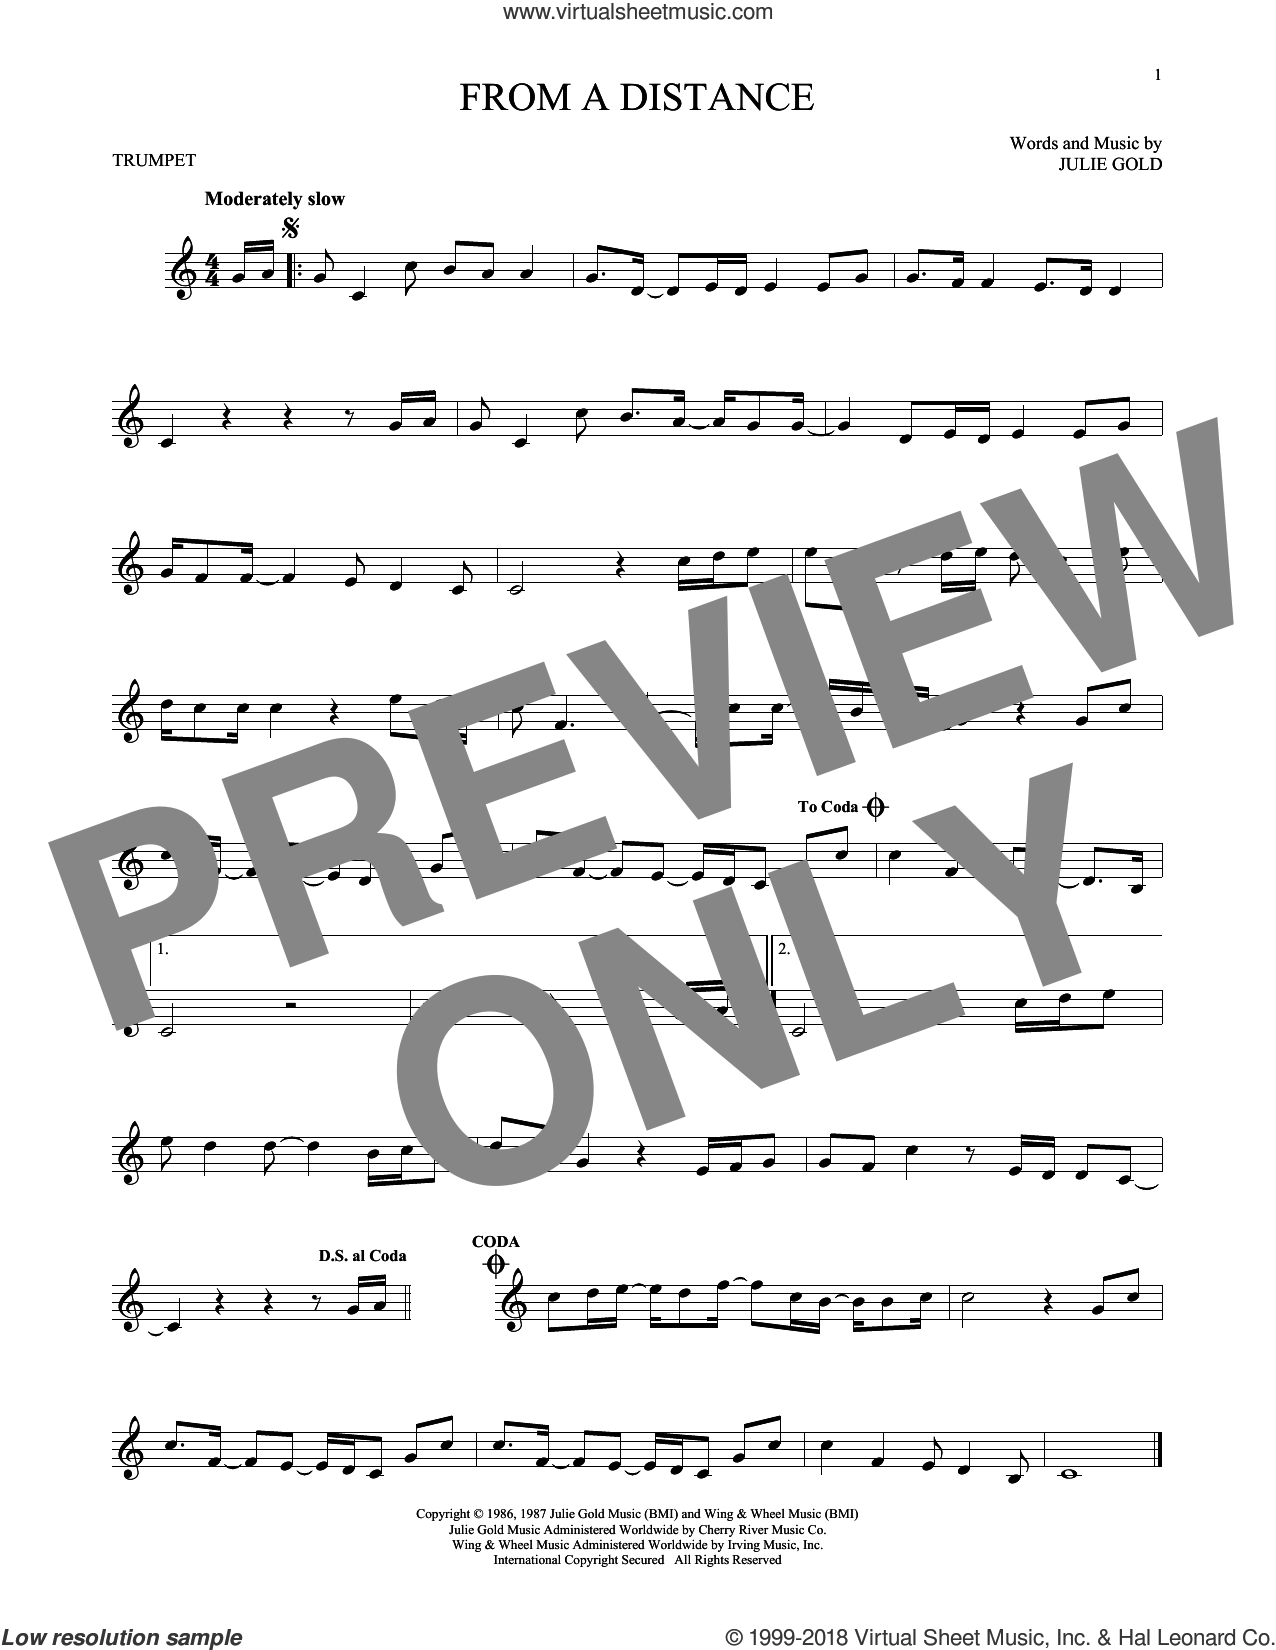 From A Distance sheet music for trumpet solo by Bette Midler and Julie Gold, intermediate skill level